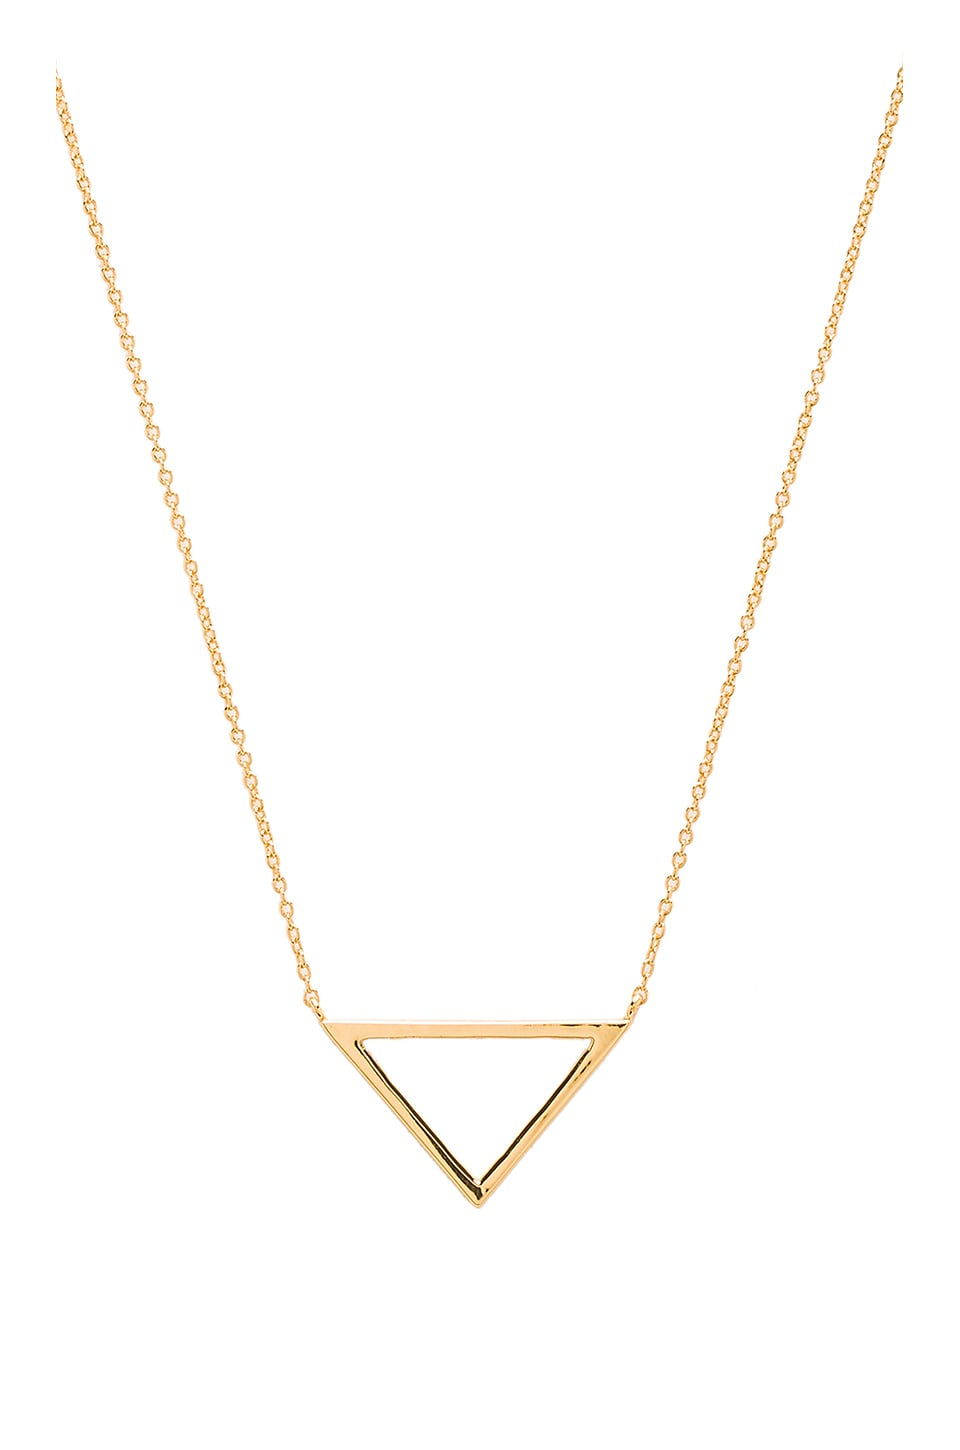 gorjana Anya Charm Necklace in Gold